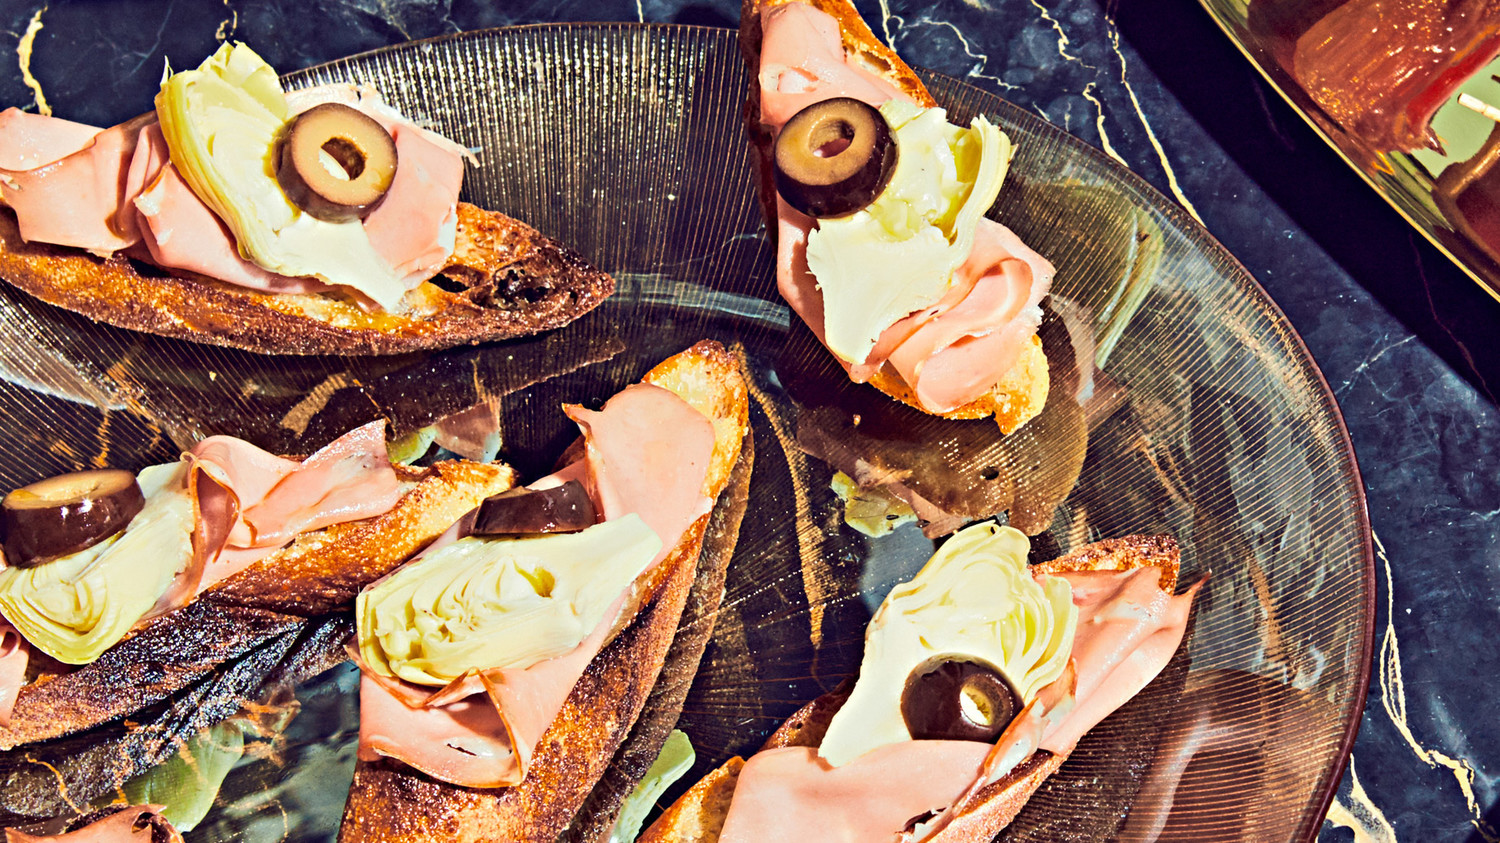 Mortadella, Artichoke-Heart, and Olive Crostini